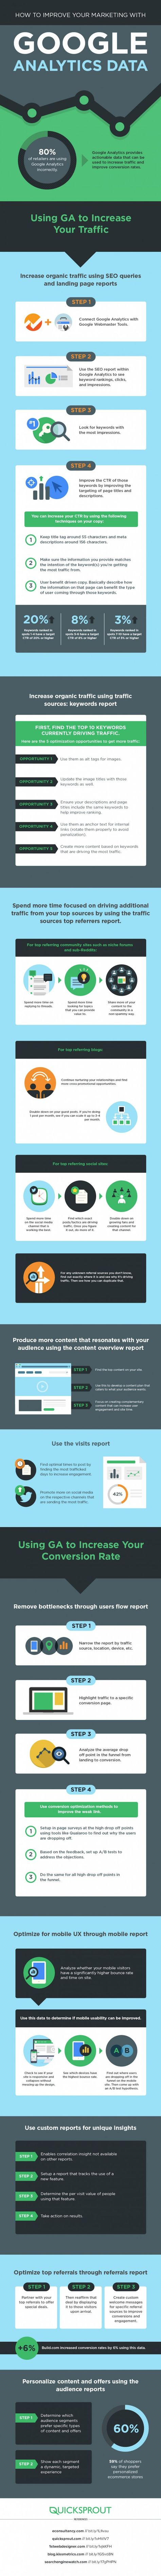 How to improve your marketing campaigns by following these google analytic tips to better evaluate your results.